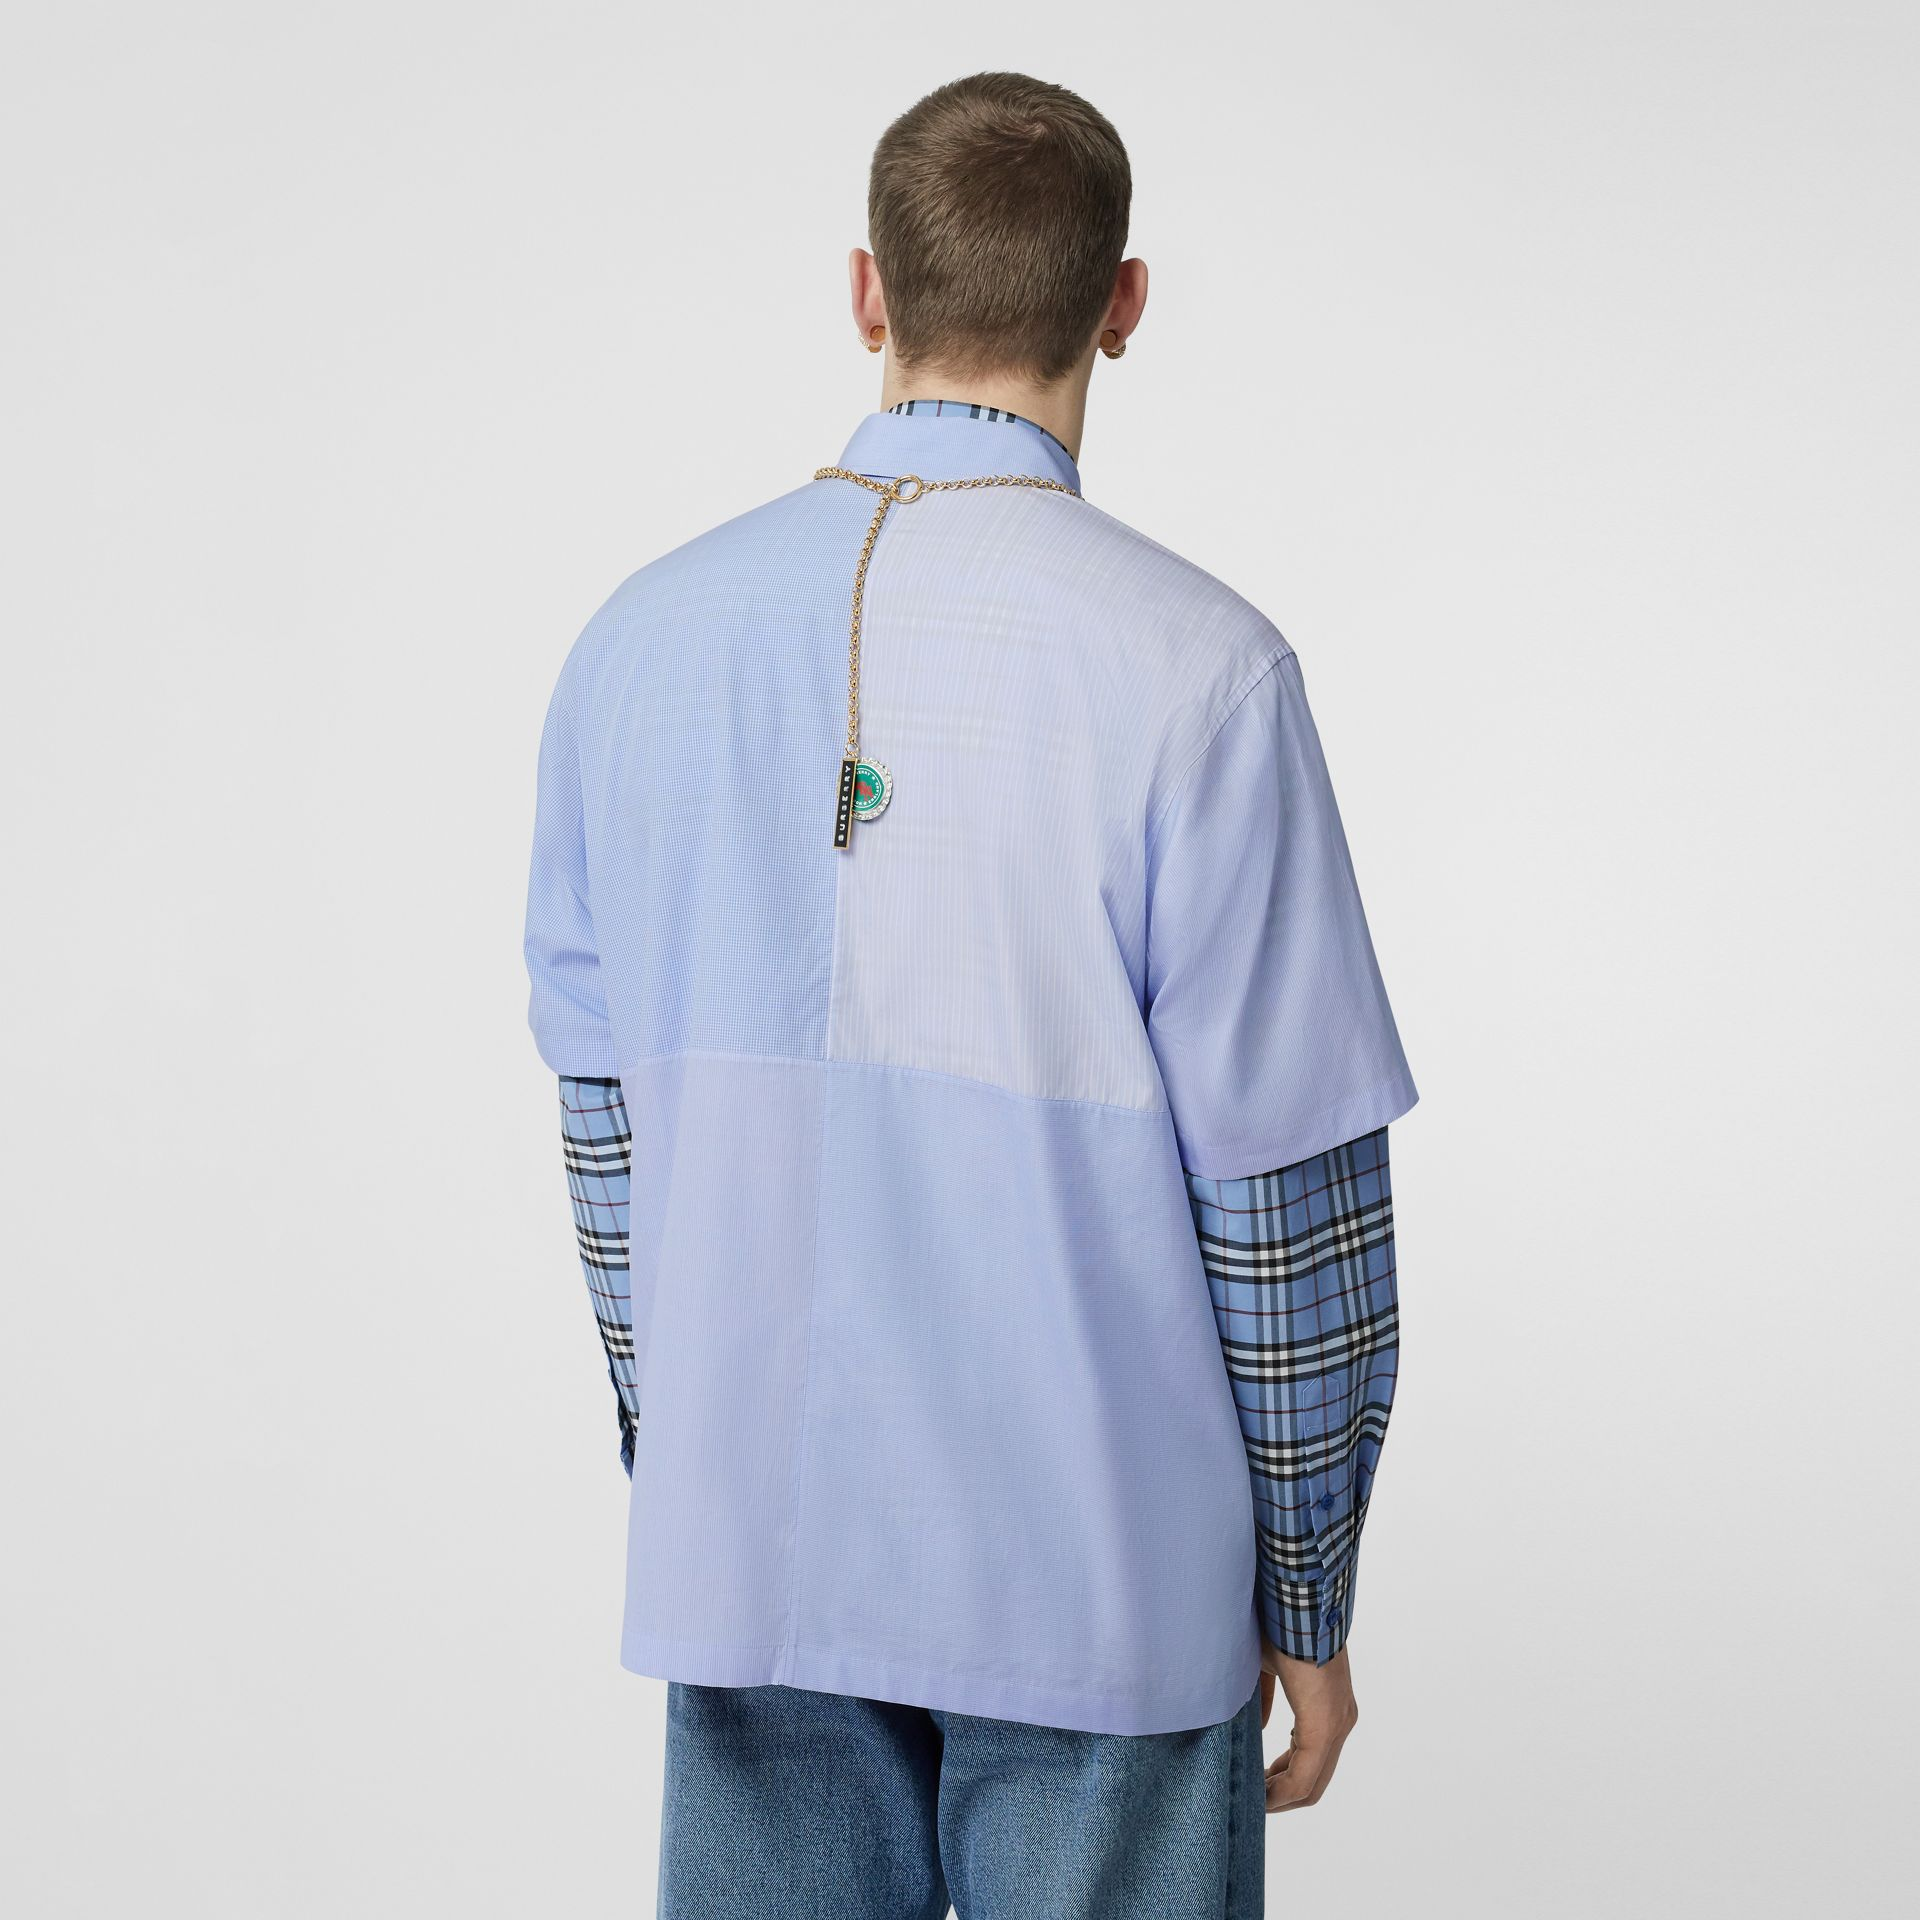 Short-sleeve Logo Graphic Patchwork Cotton Shirt in Pale Blue - Men | Burberry United Kingdom - gallery image 2